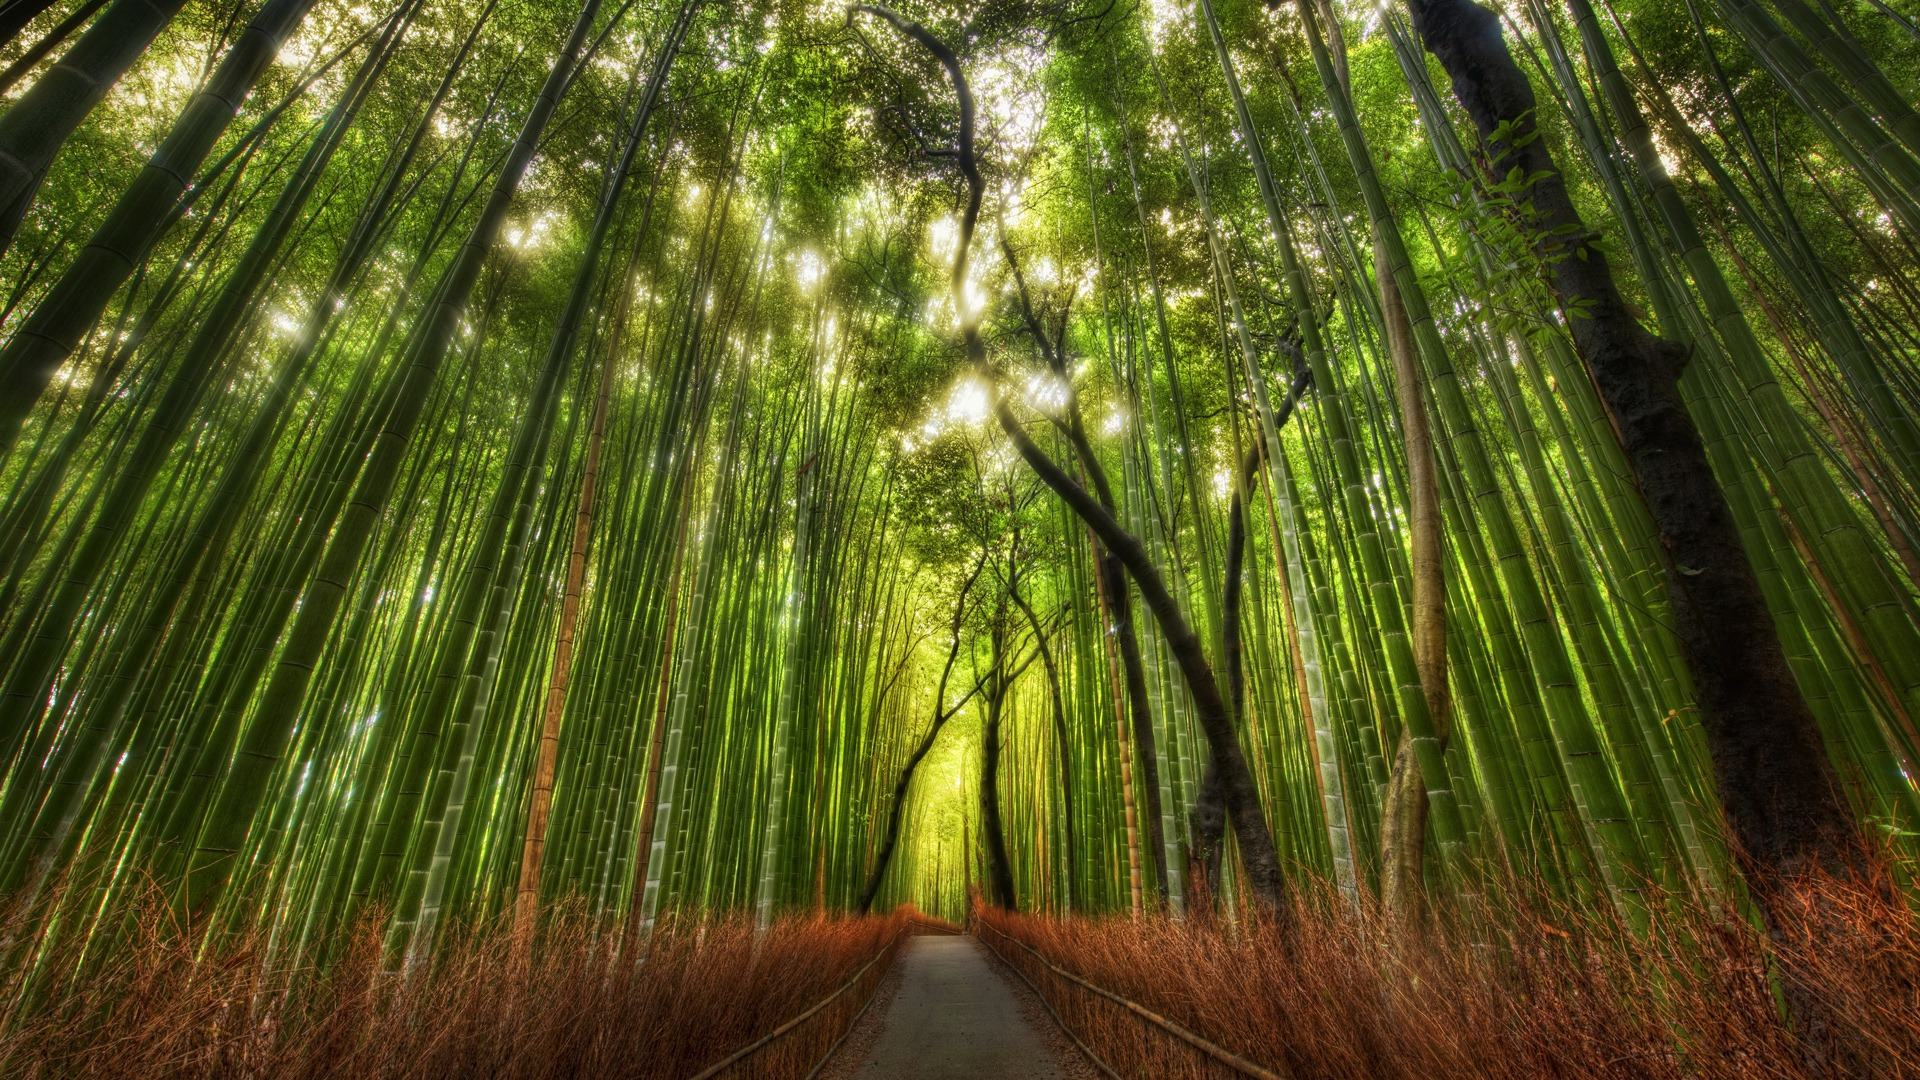 Good Wallpaper High Resolution Forest - forest_scenery_wallpaper_004  Graphic_19603.jpg